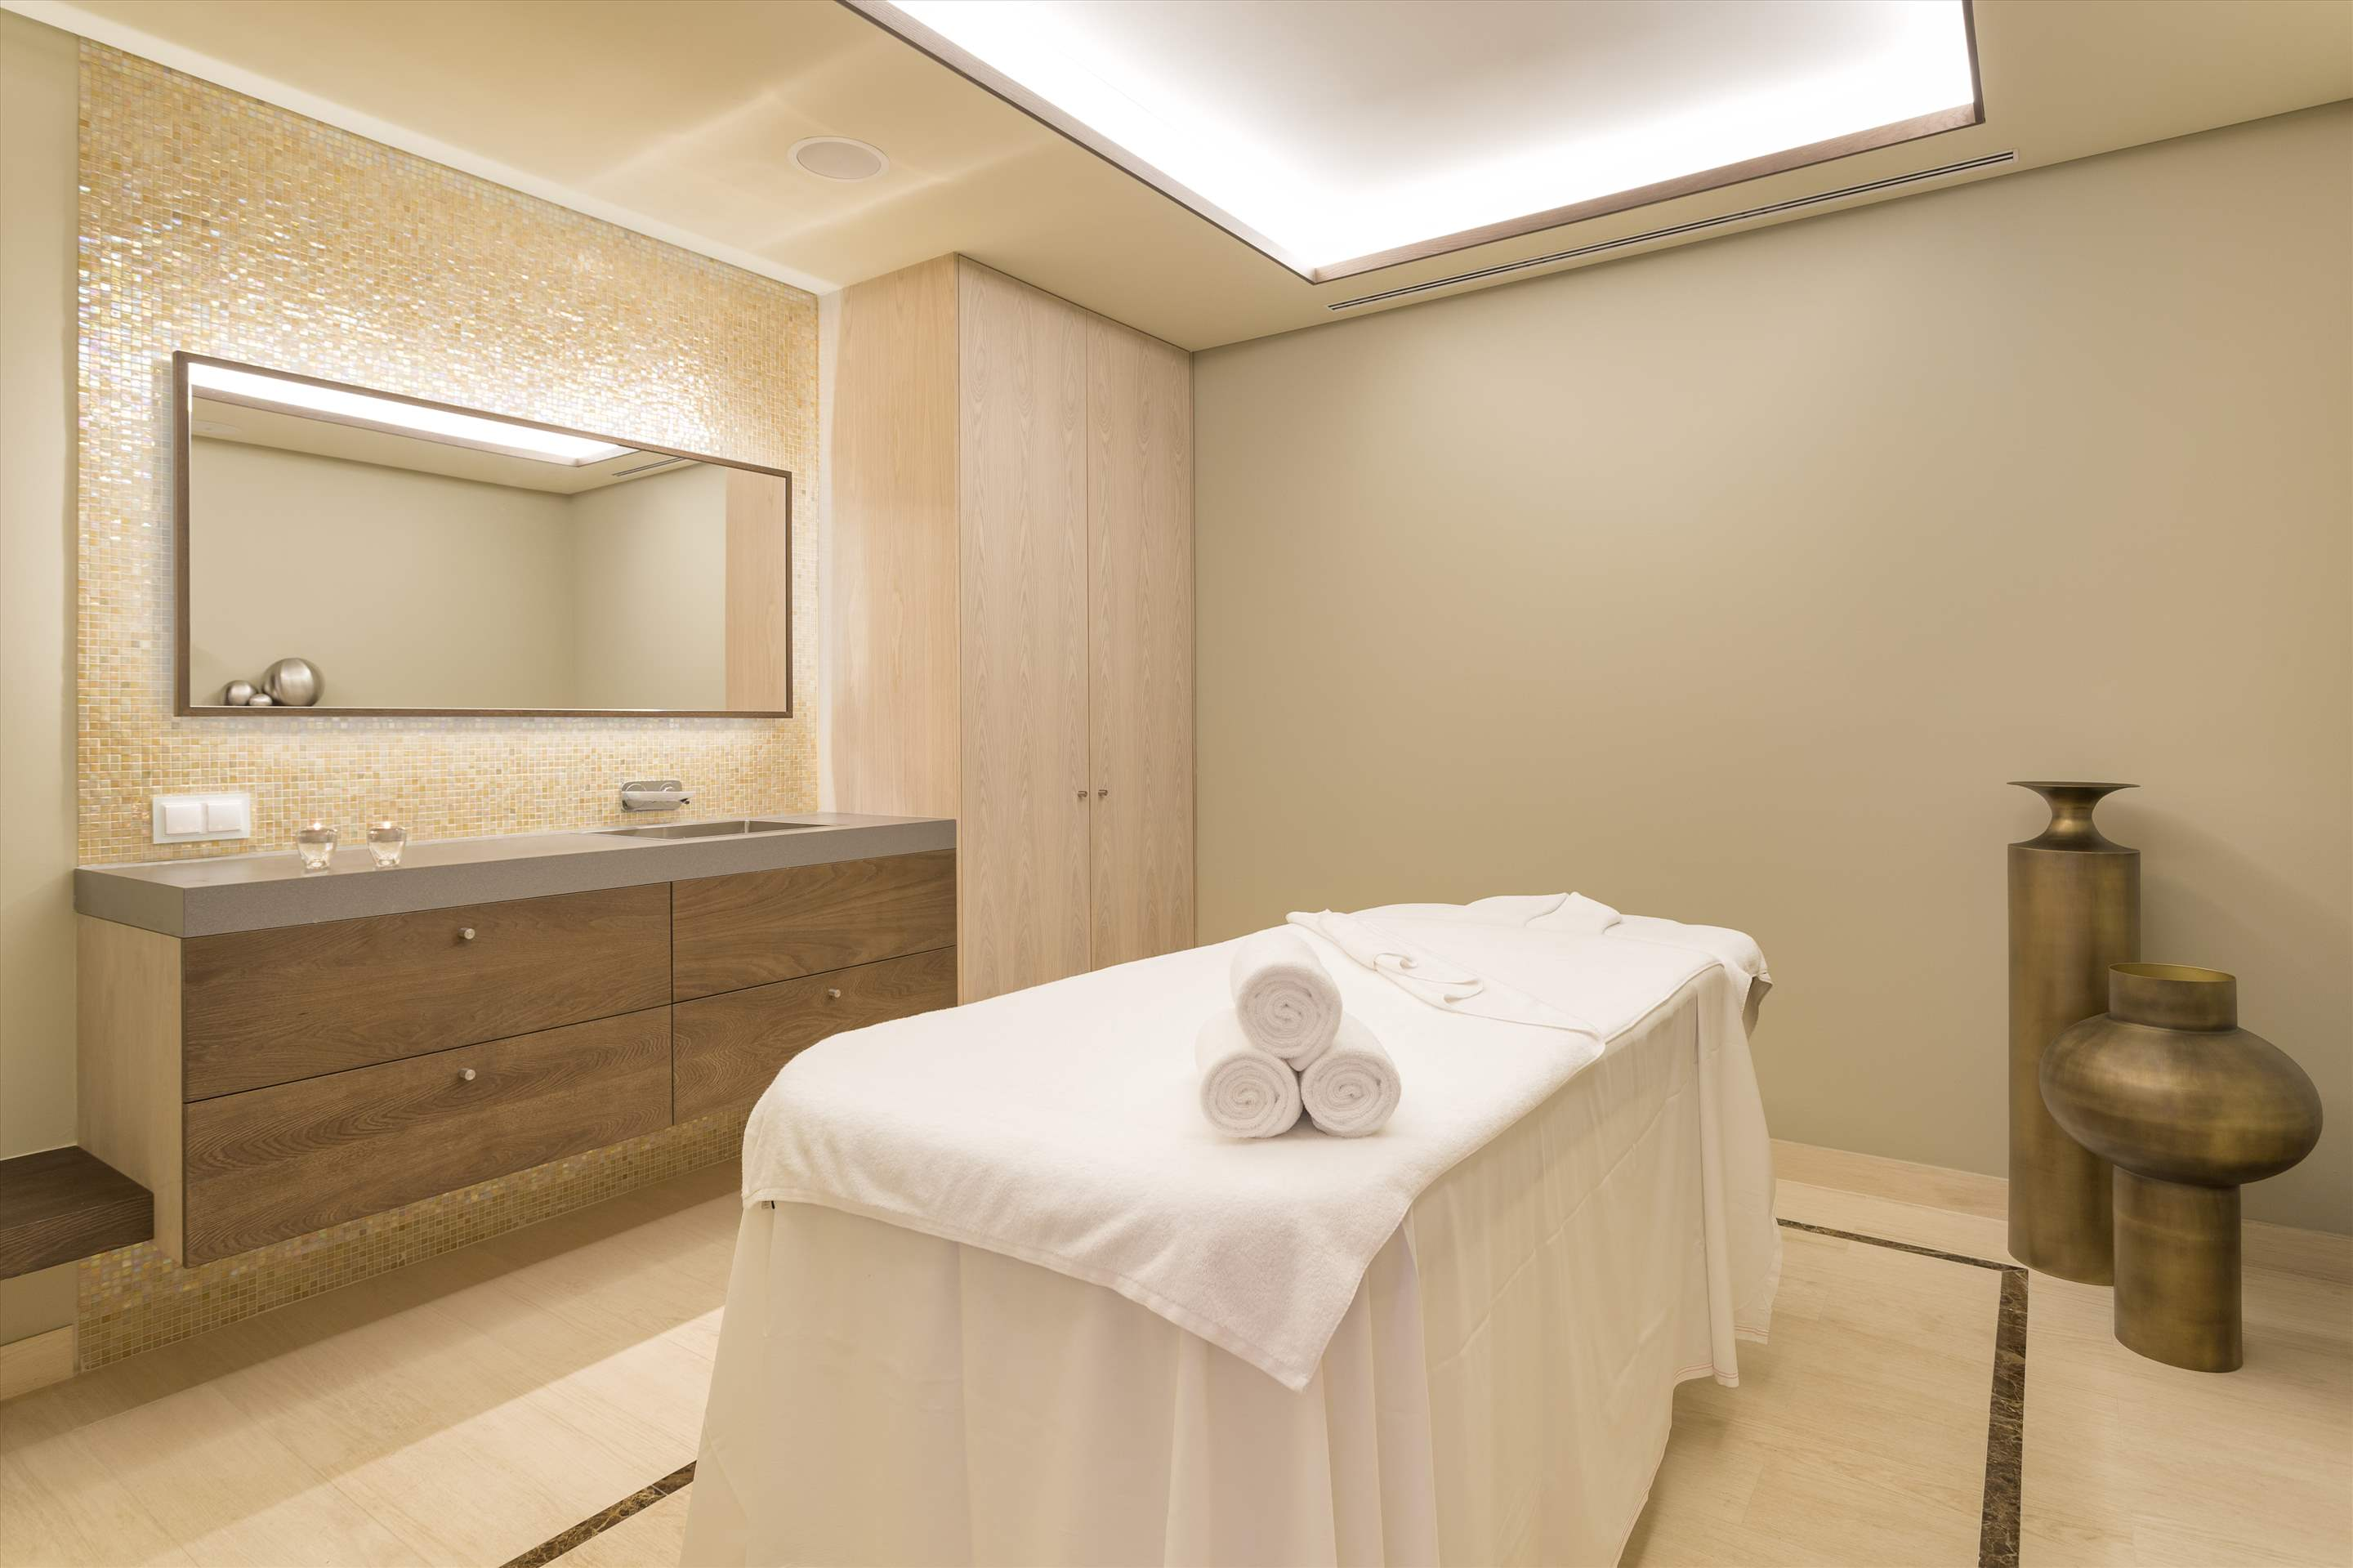 Pine Cliffs Residence, Penthouse 2 bed luxury suite, 2 bedroom apartment in Pine Cliffs Resort, Algarve Photo #32